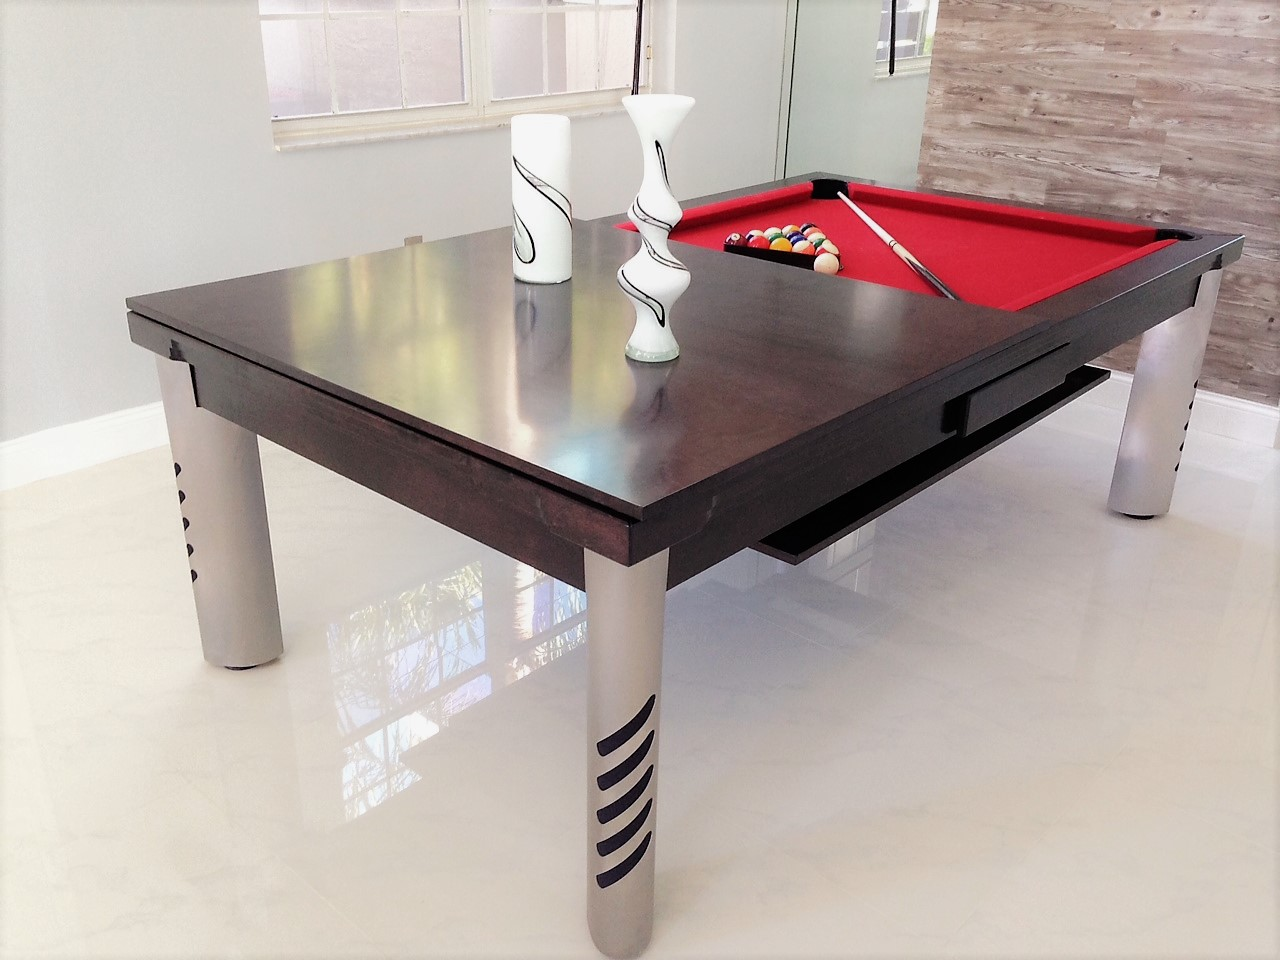 Convertible dining pool fusion table Mirage by Vision Billiards in espresso